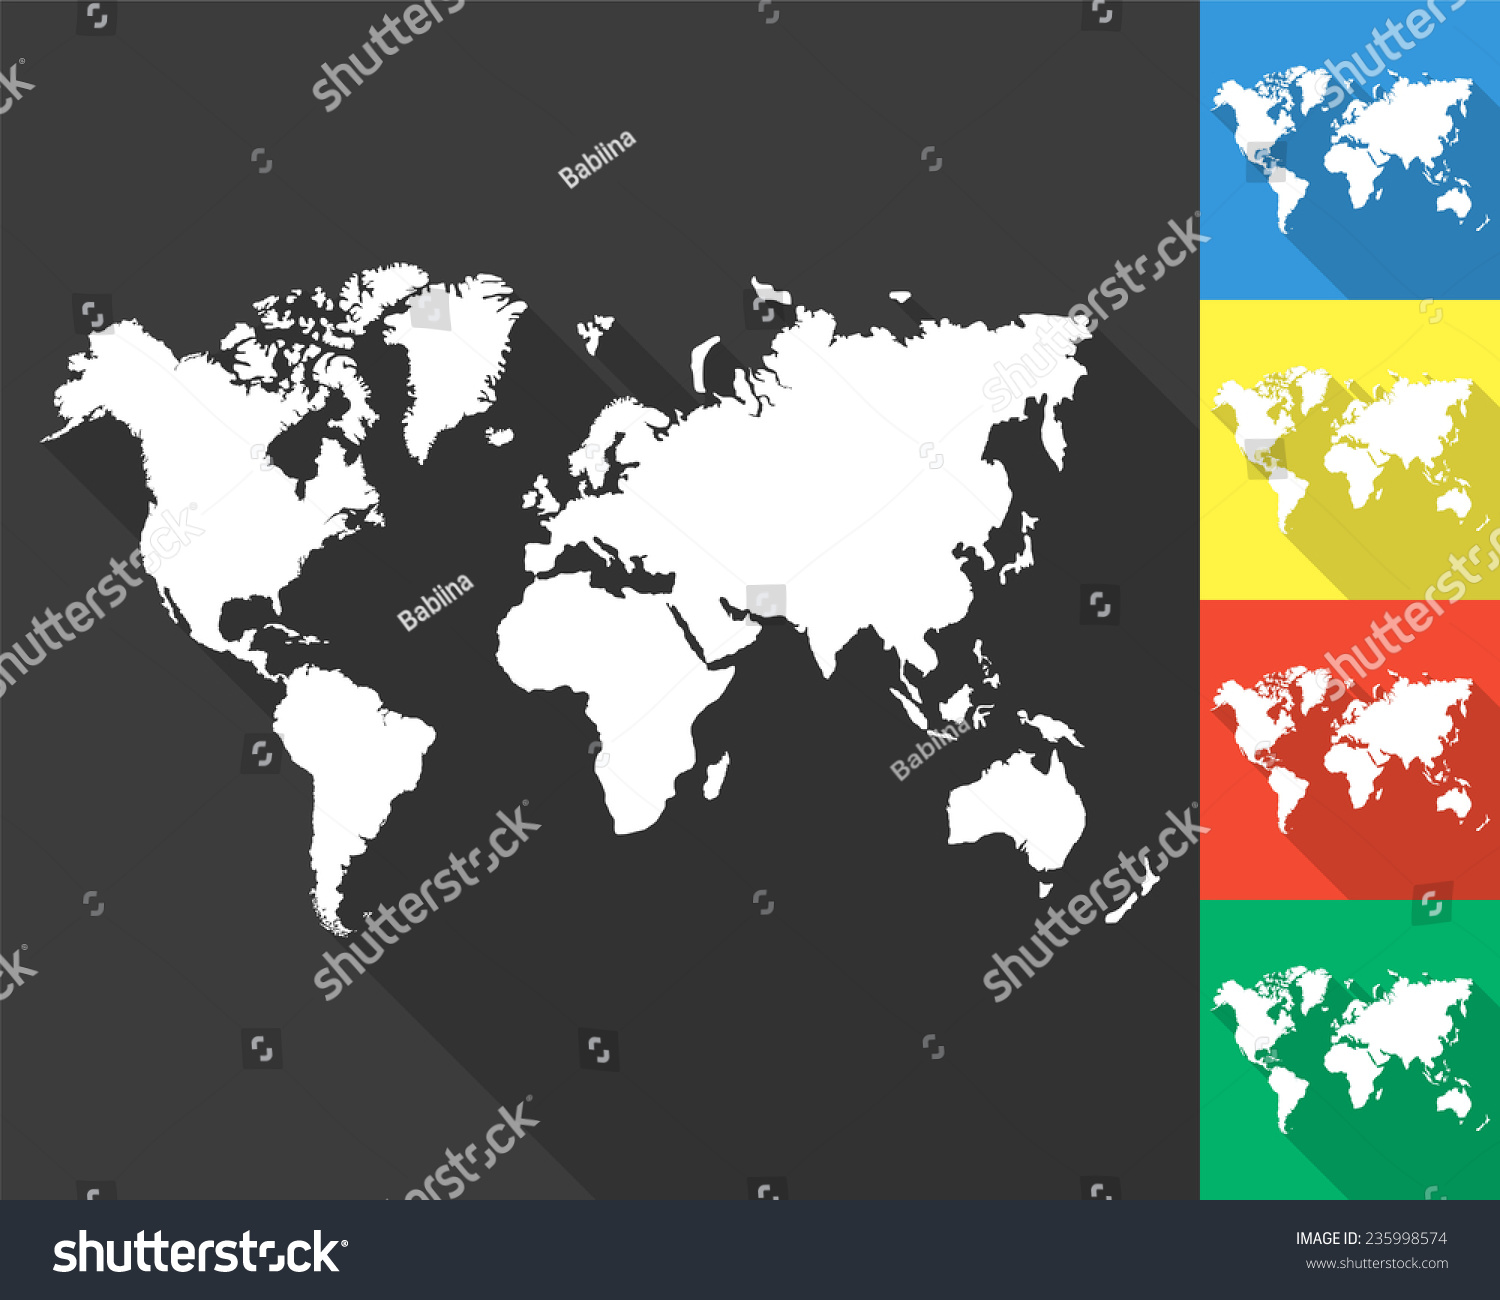 World map icon gray colored blue stock vector 235998574 shutterstock world map icon gray and colored blue yellow red green gumiabroncs Image collections